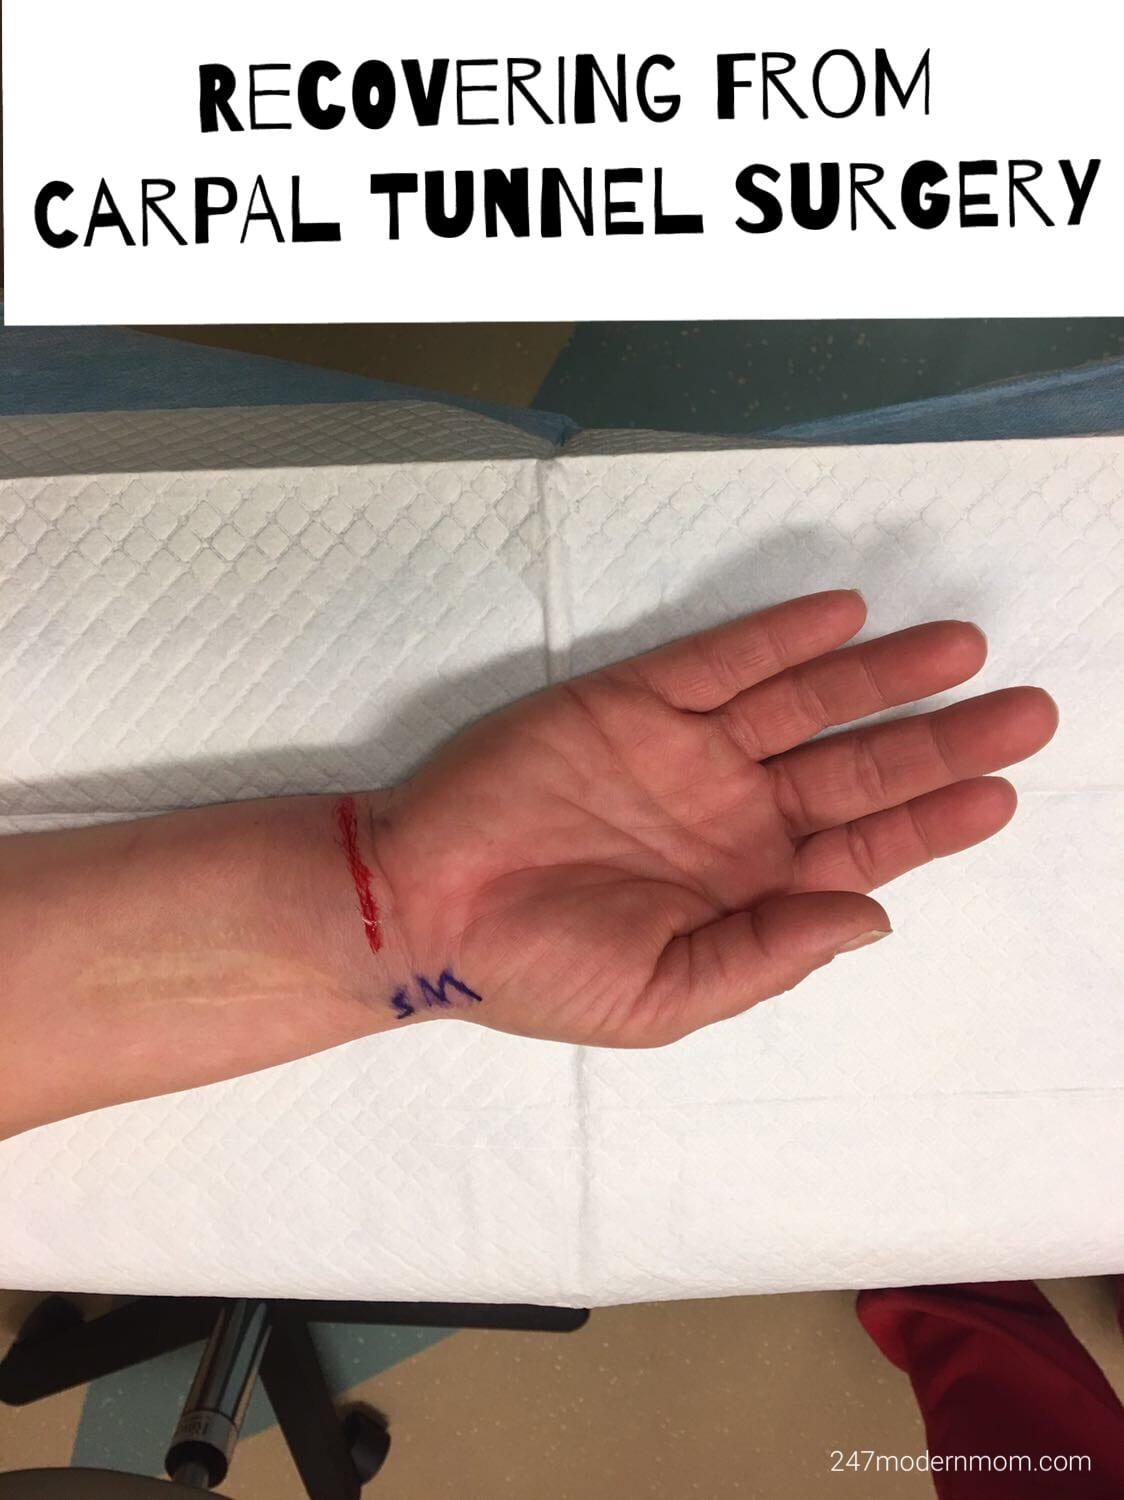 Carpal Tunnel Surgery Recovery: 3 Months Later